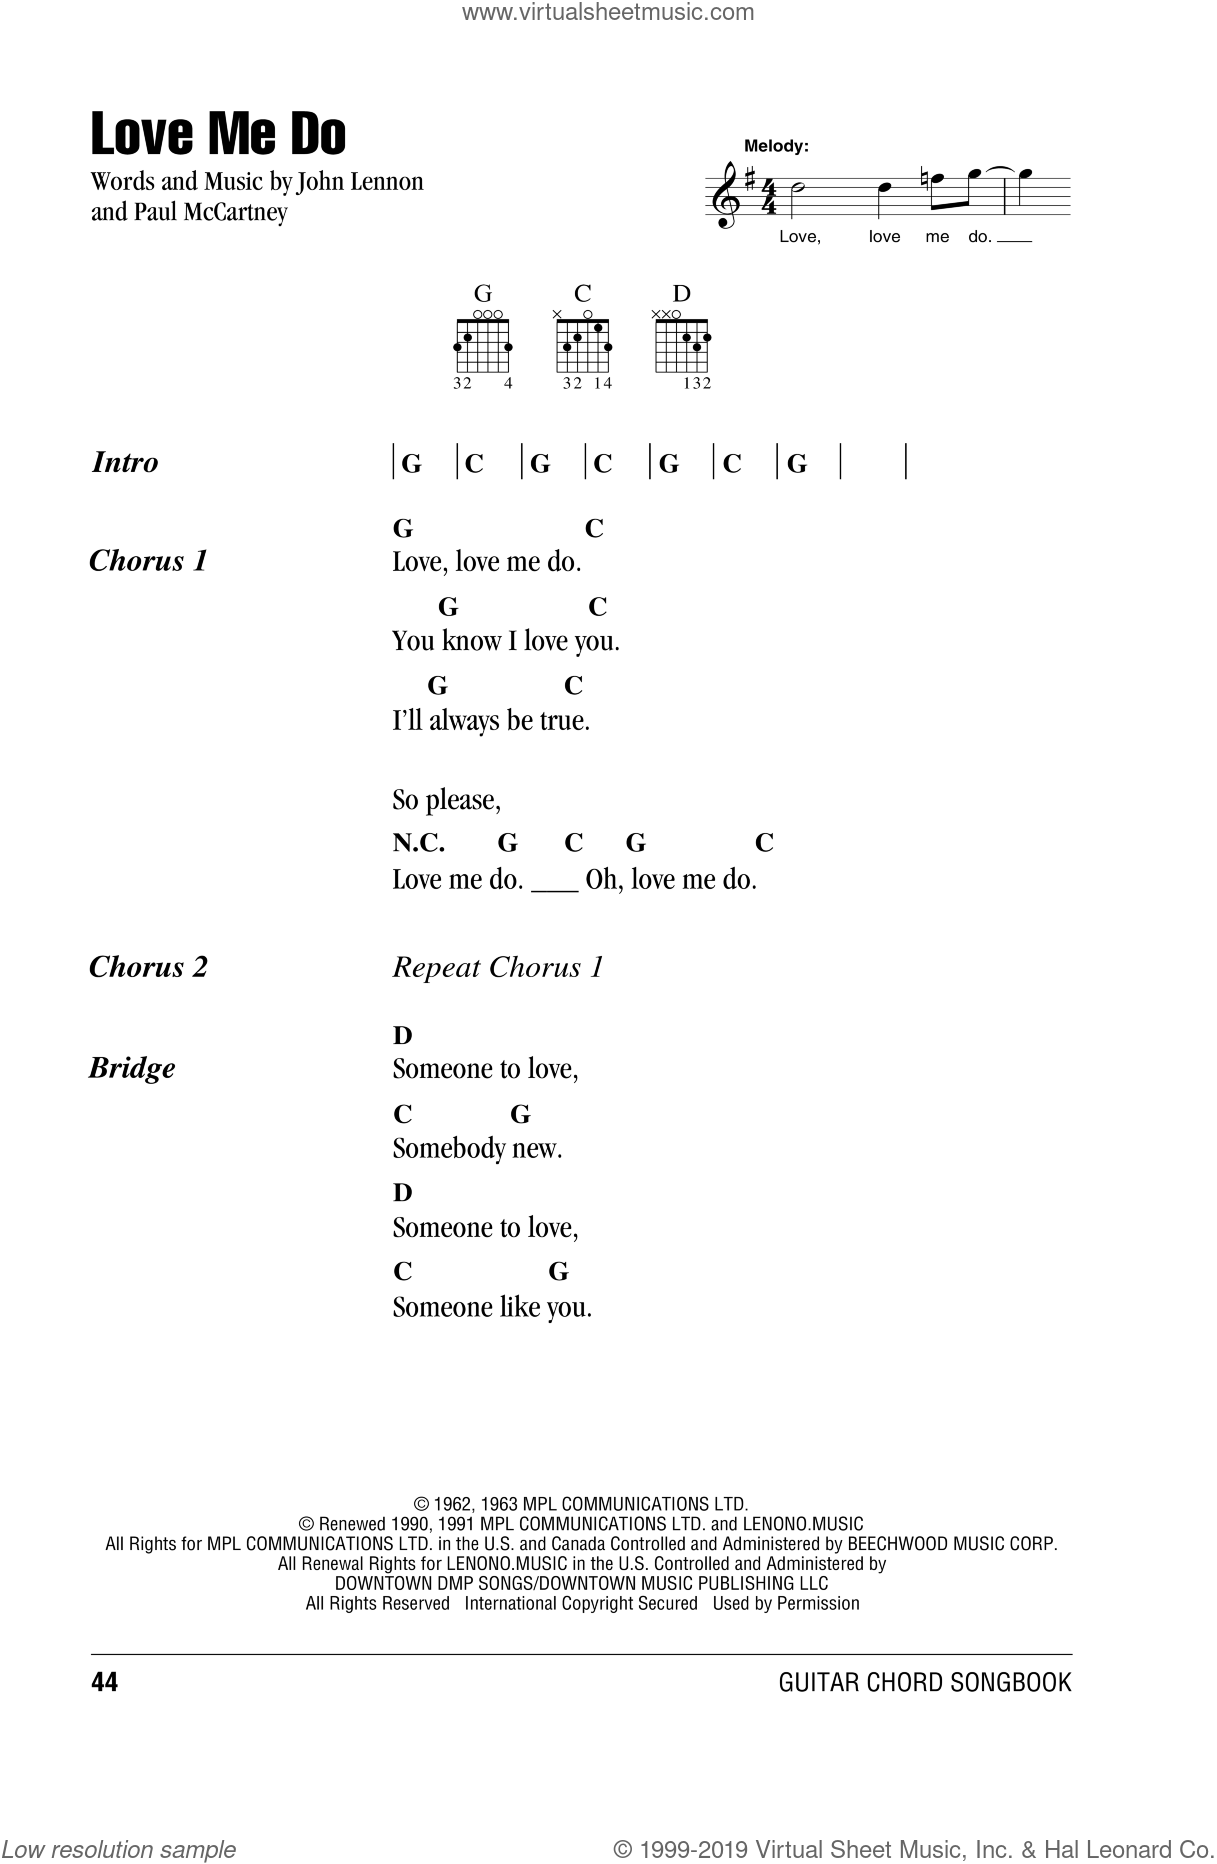 Love Me Do sheet music for guitar (chords) by The Beatles, John Lennon and Paul McCartney, intermediate skill level